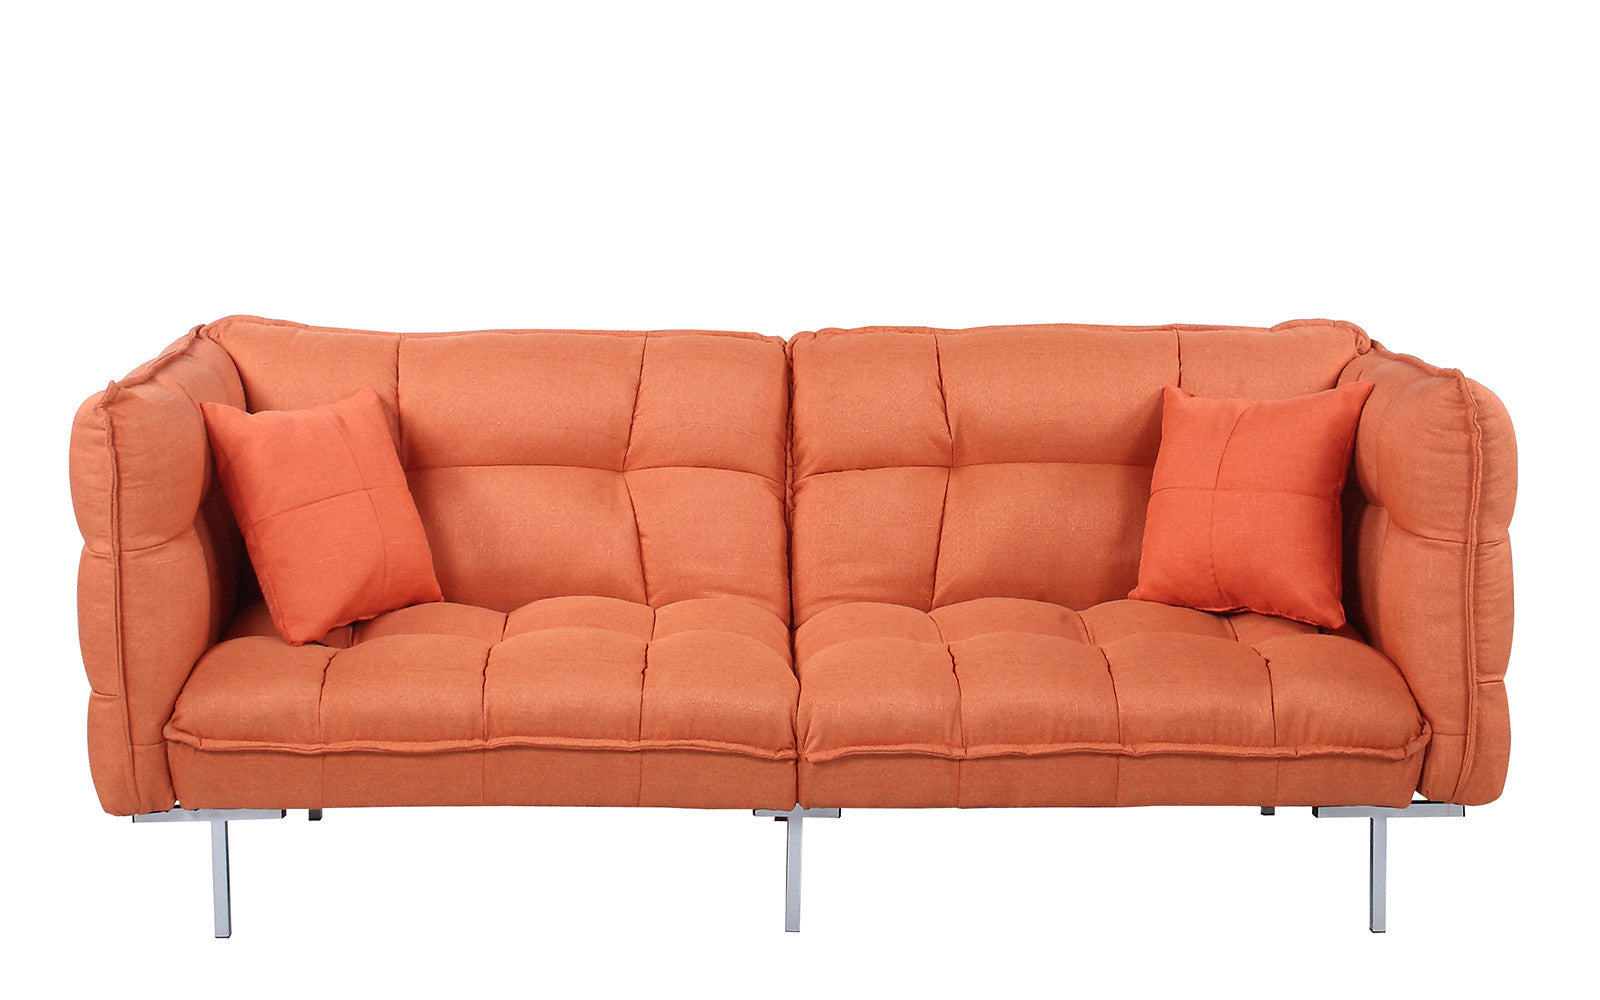 scoop modern tufted linen futon in orange     scoop modern tufted linen futon   sofamania    rh   sofamania